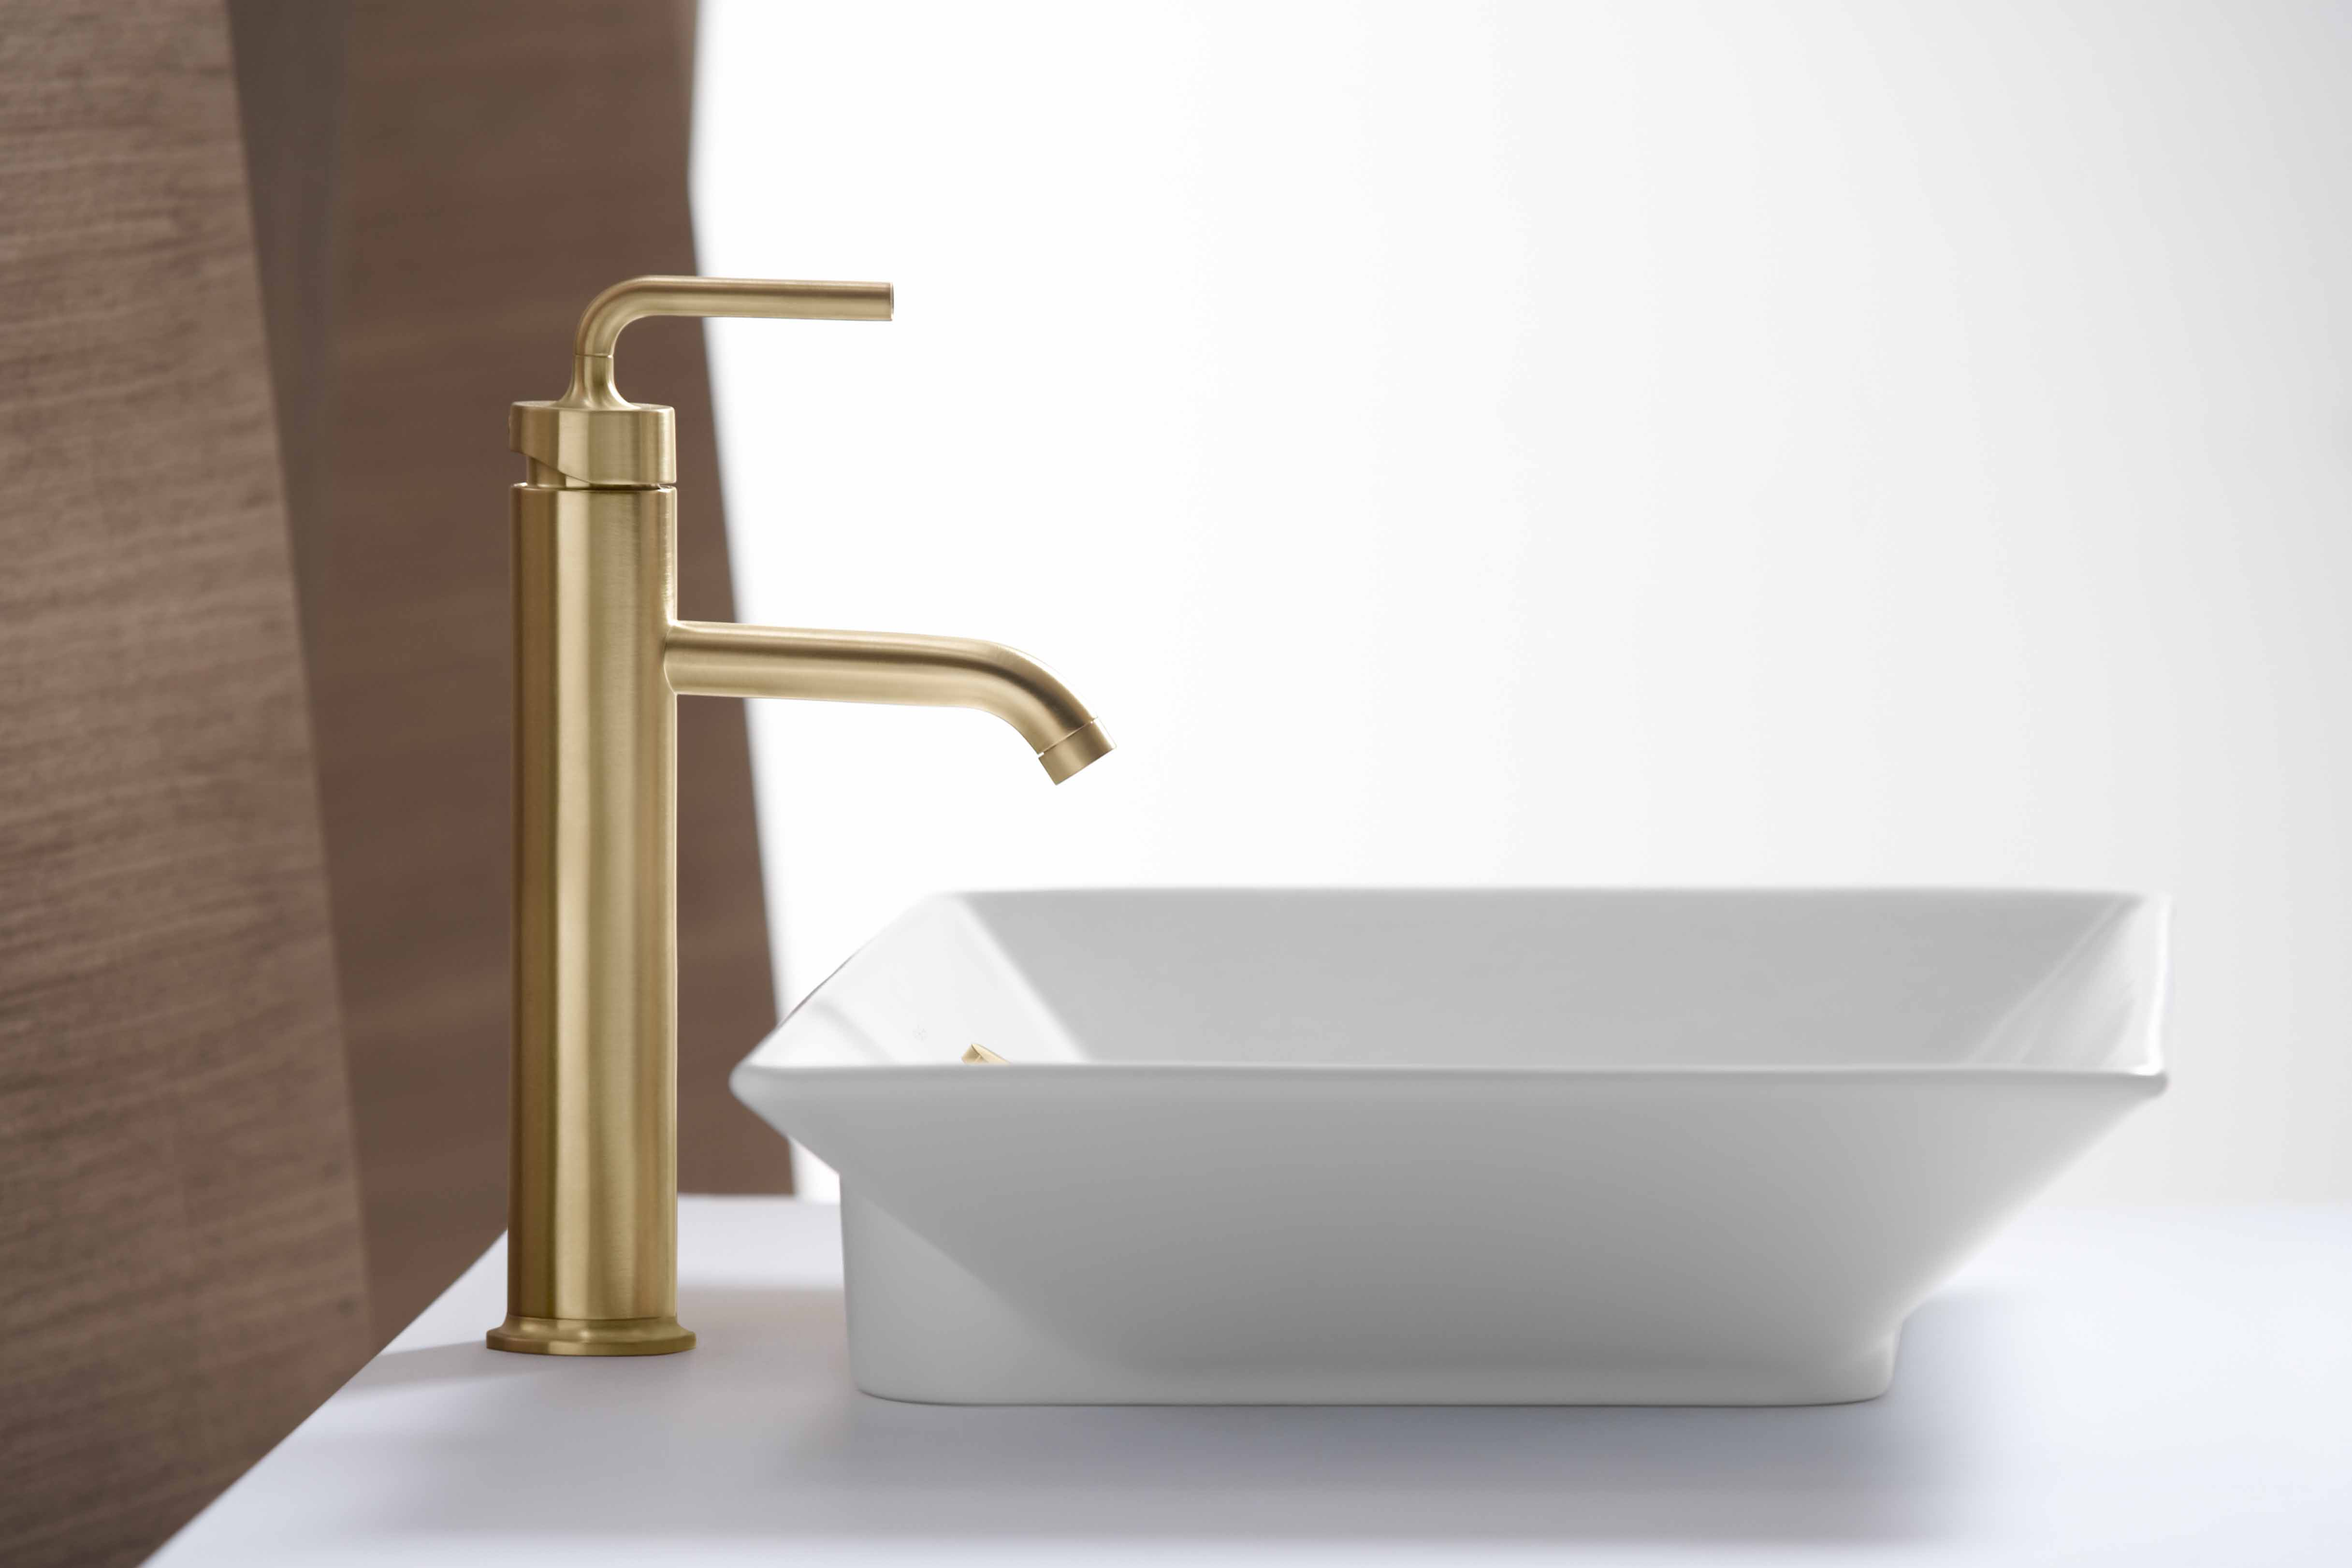 Purist Faucet     Rêve Sink     A Vibrant® Brushed Moderne Gold finish can add a pop of color to a simple faucet.